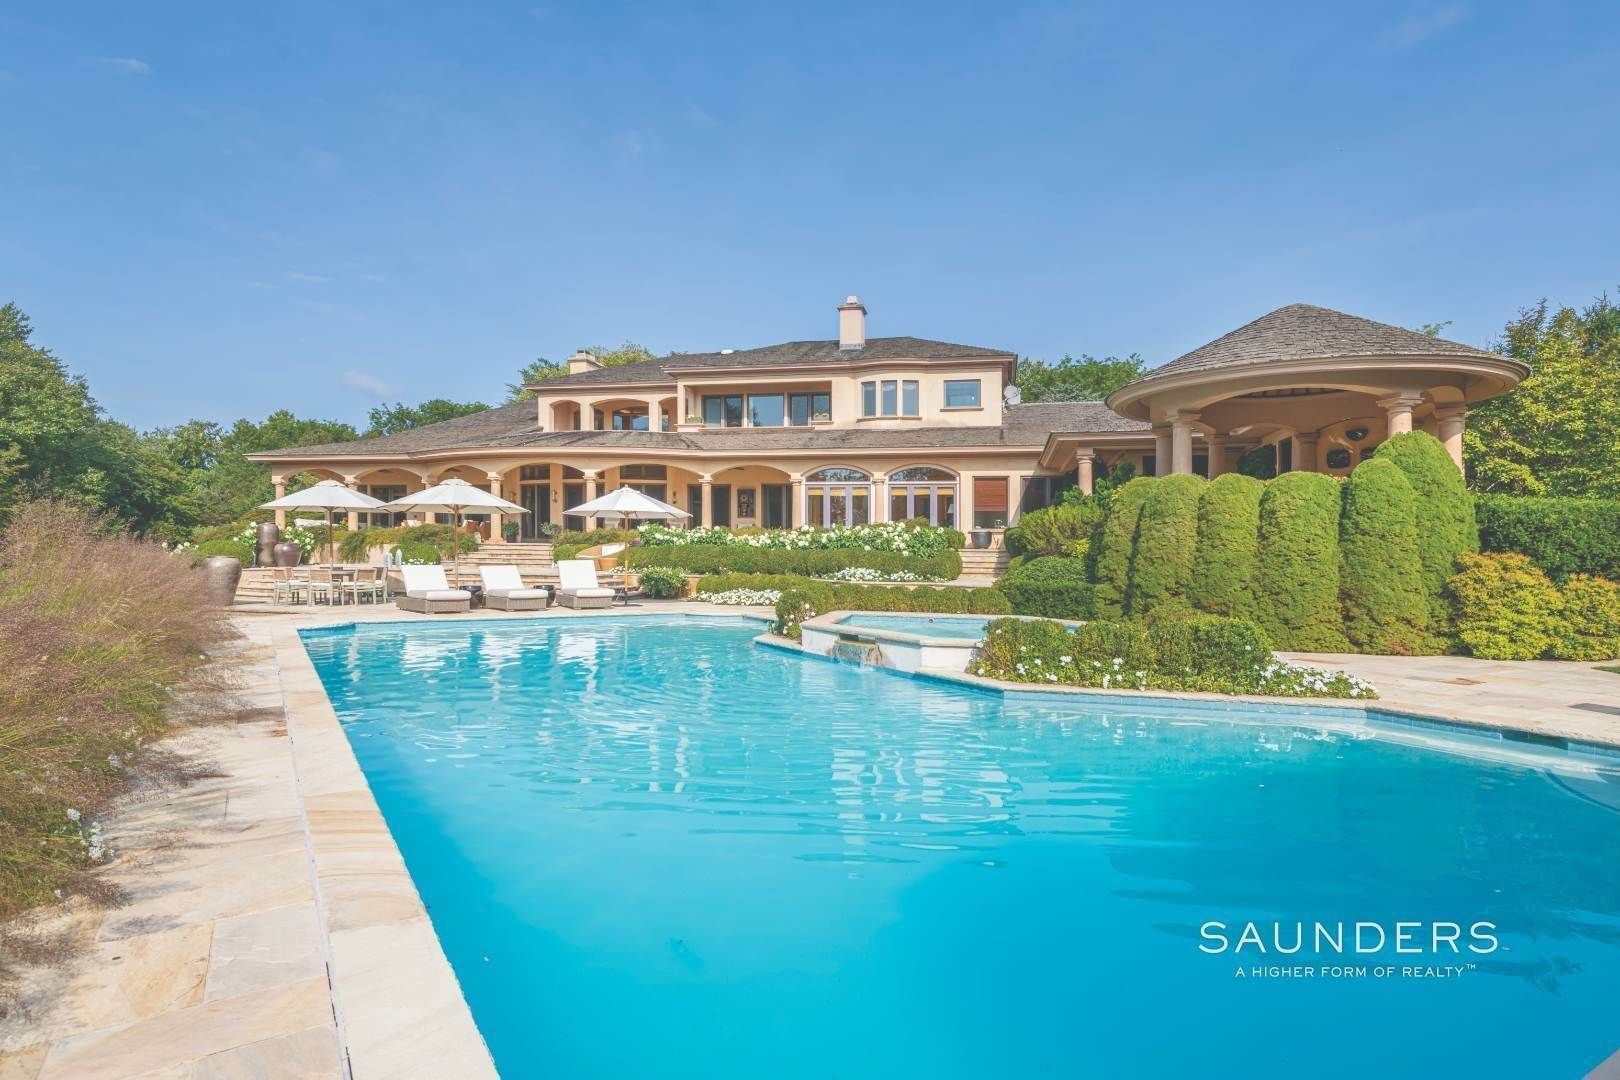 18. Single Family Homes for Sale at Secluded Bridgehampton Waterfront Estate 160 & 164 Trelawney Road, Bridgehampton, Southampton Town, NY 11932